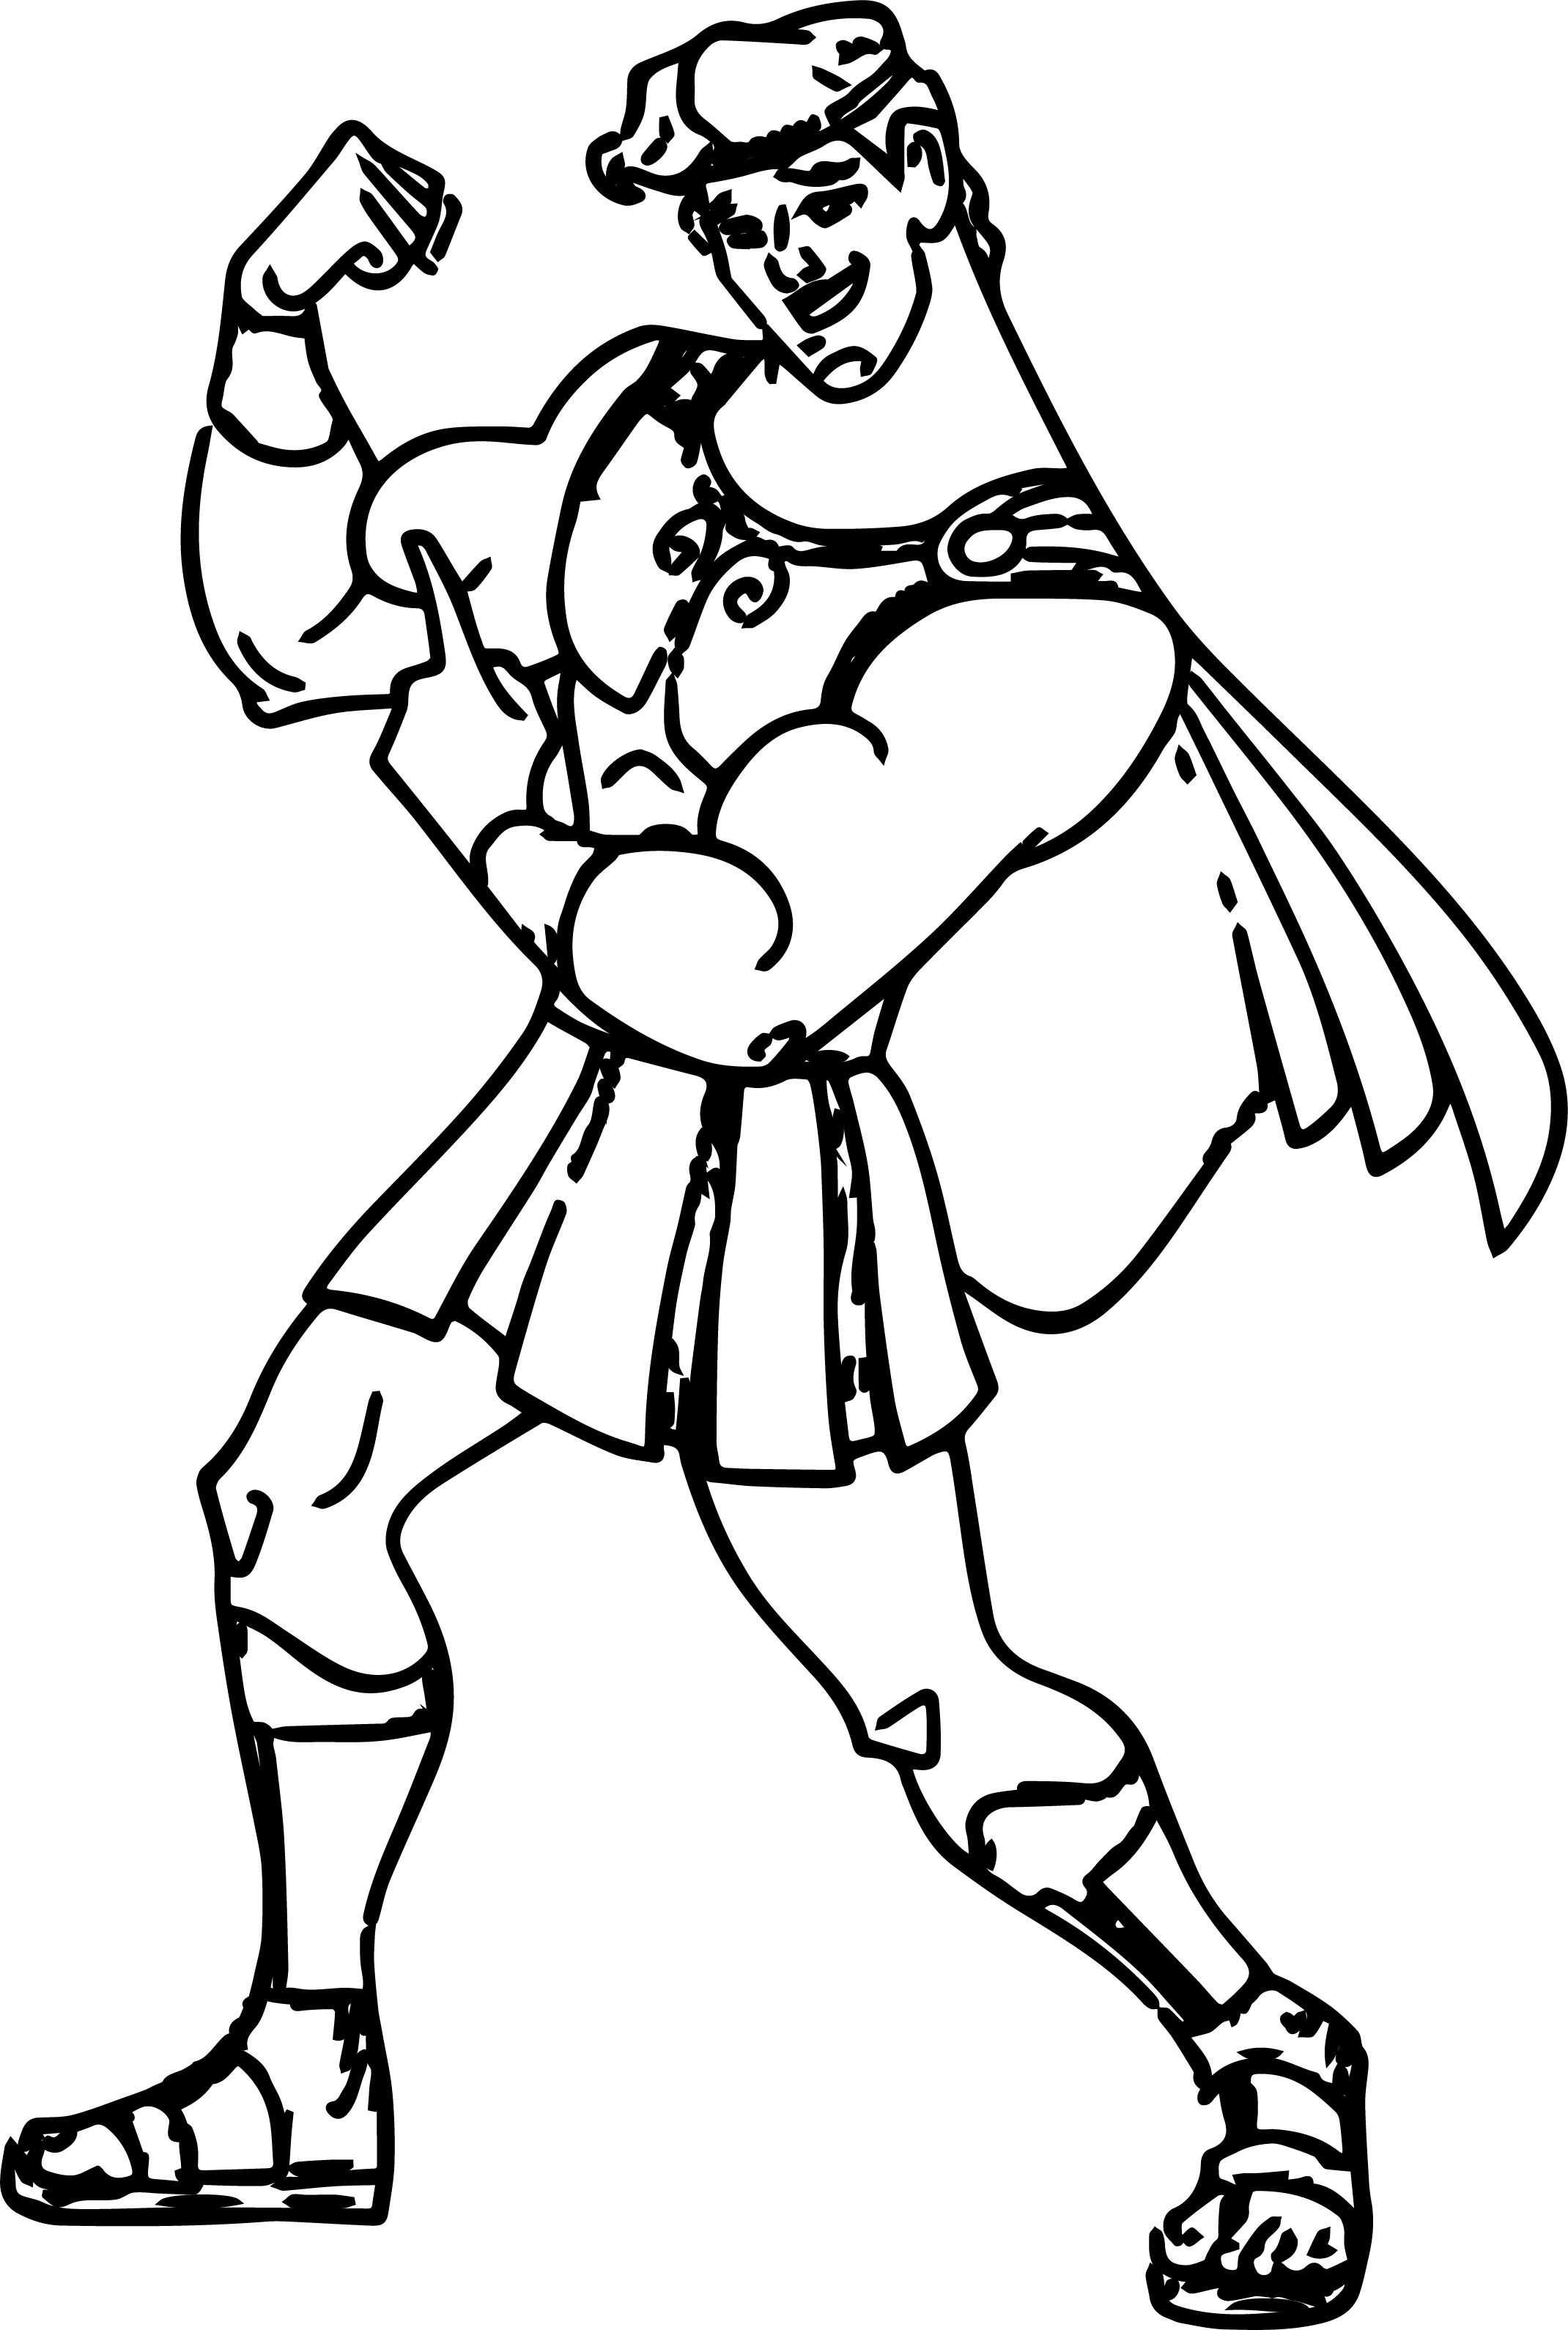 Hercules Mus Coloring Pages